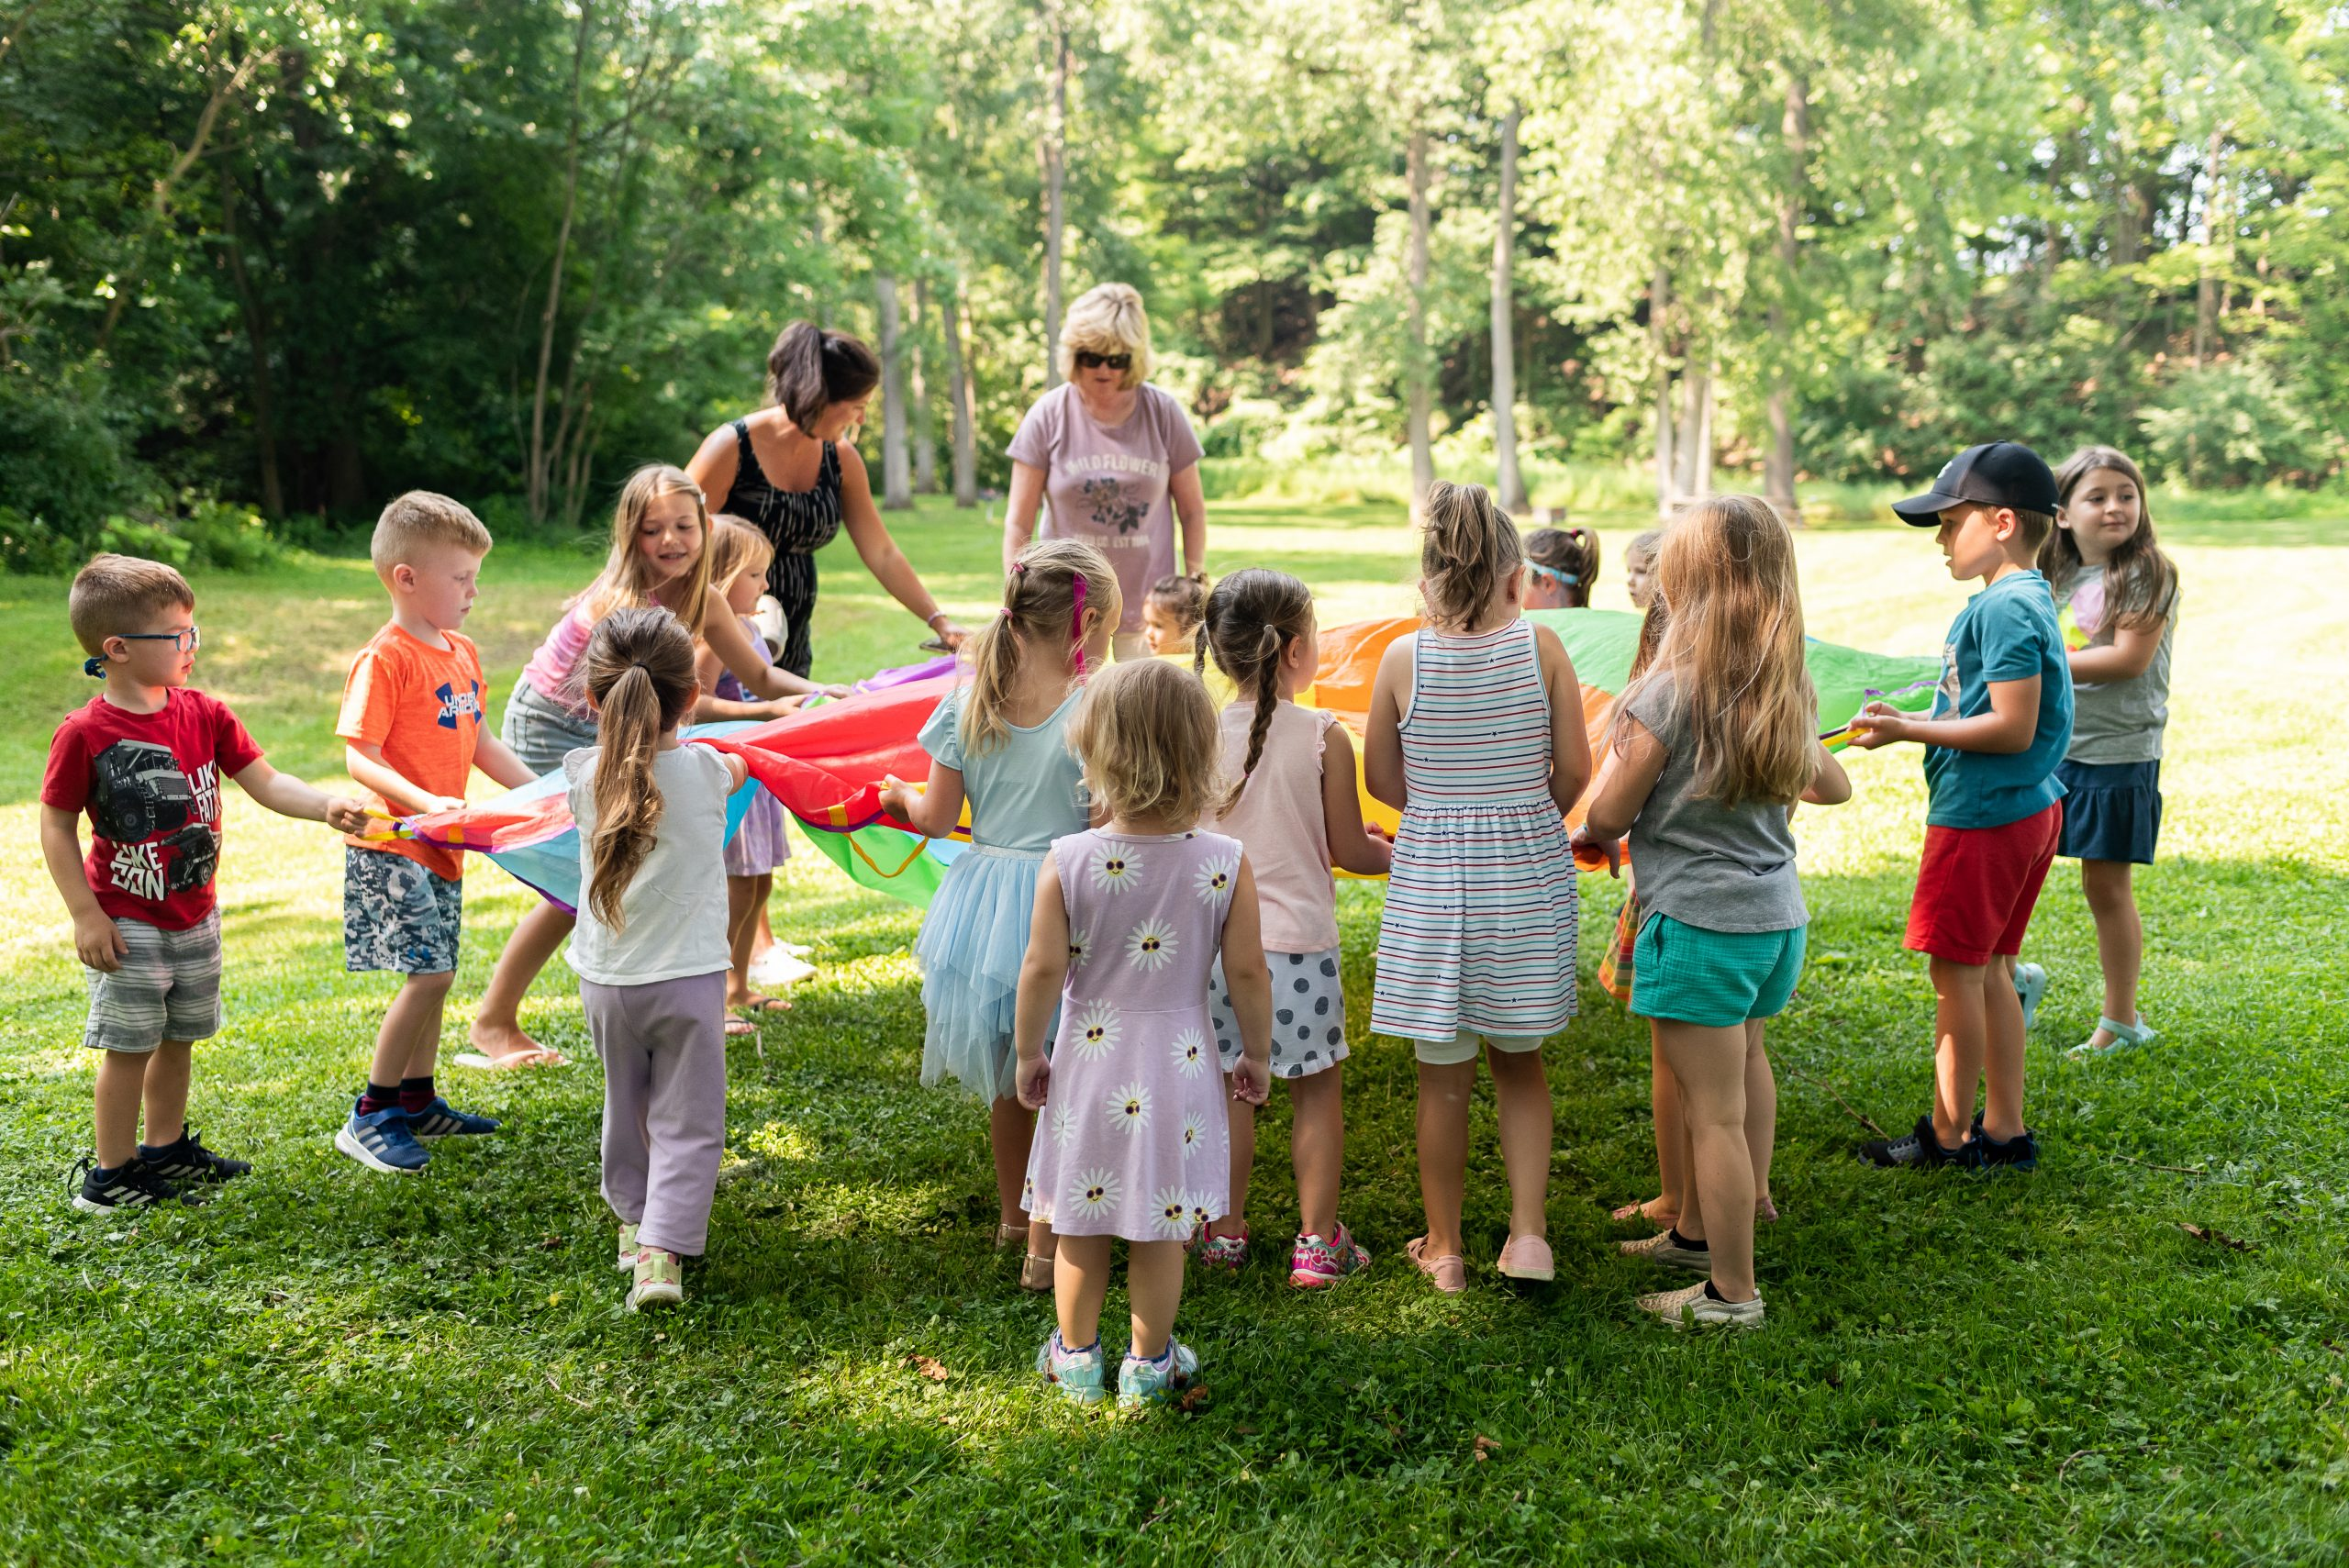 Fairmount Community Library Outdoor Programs and Events in Camillus, Fairmount and Syracuse NY